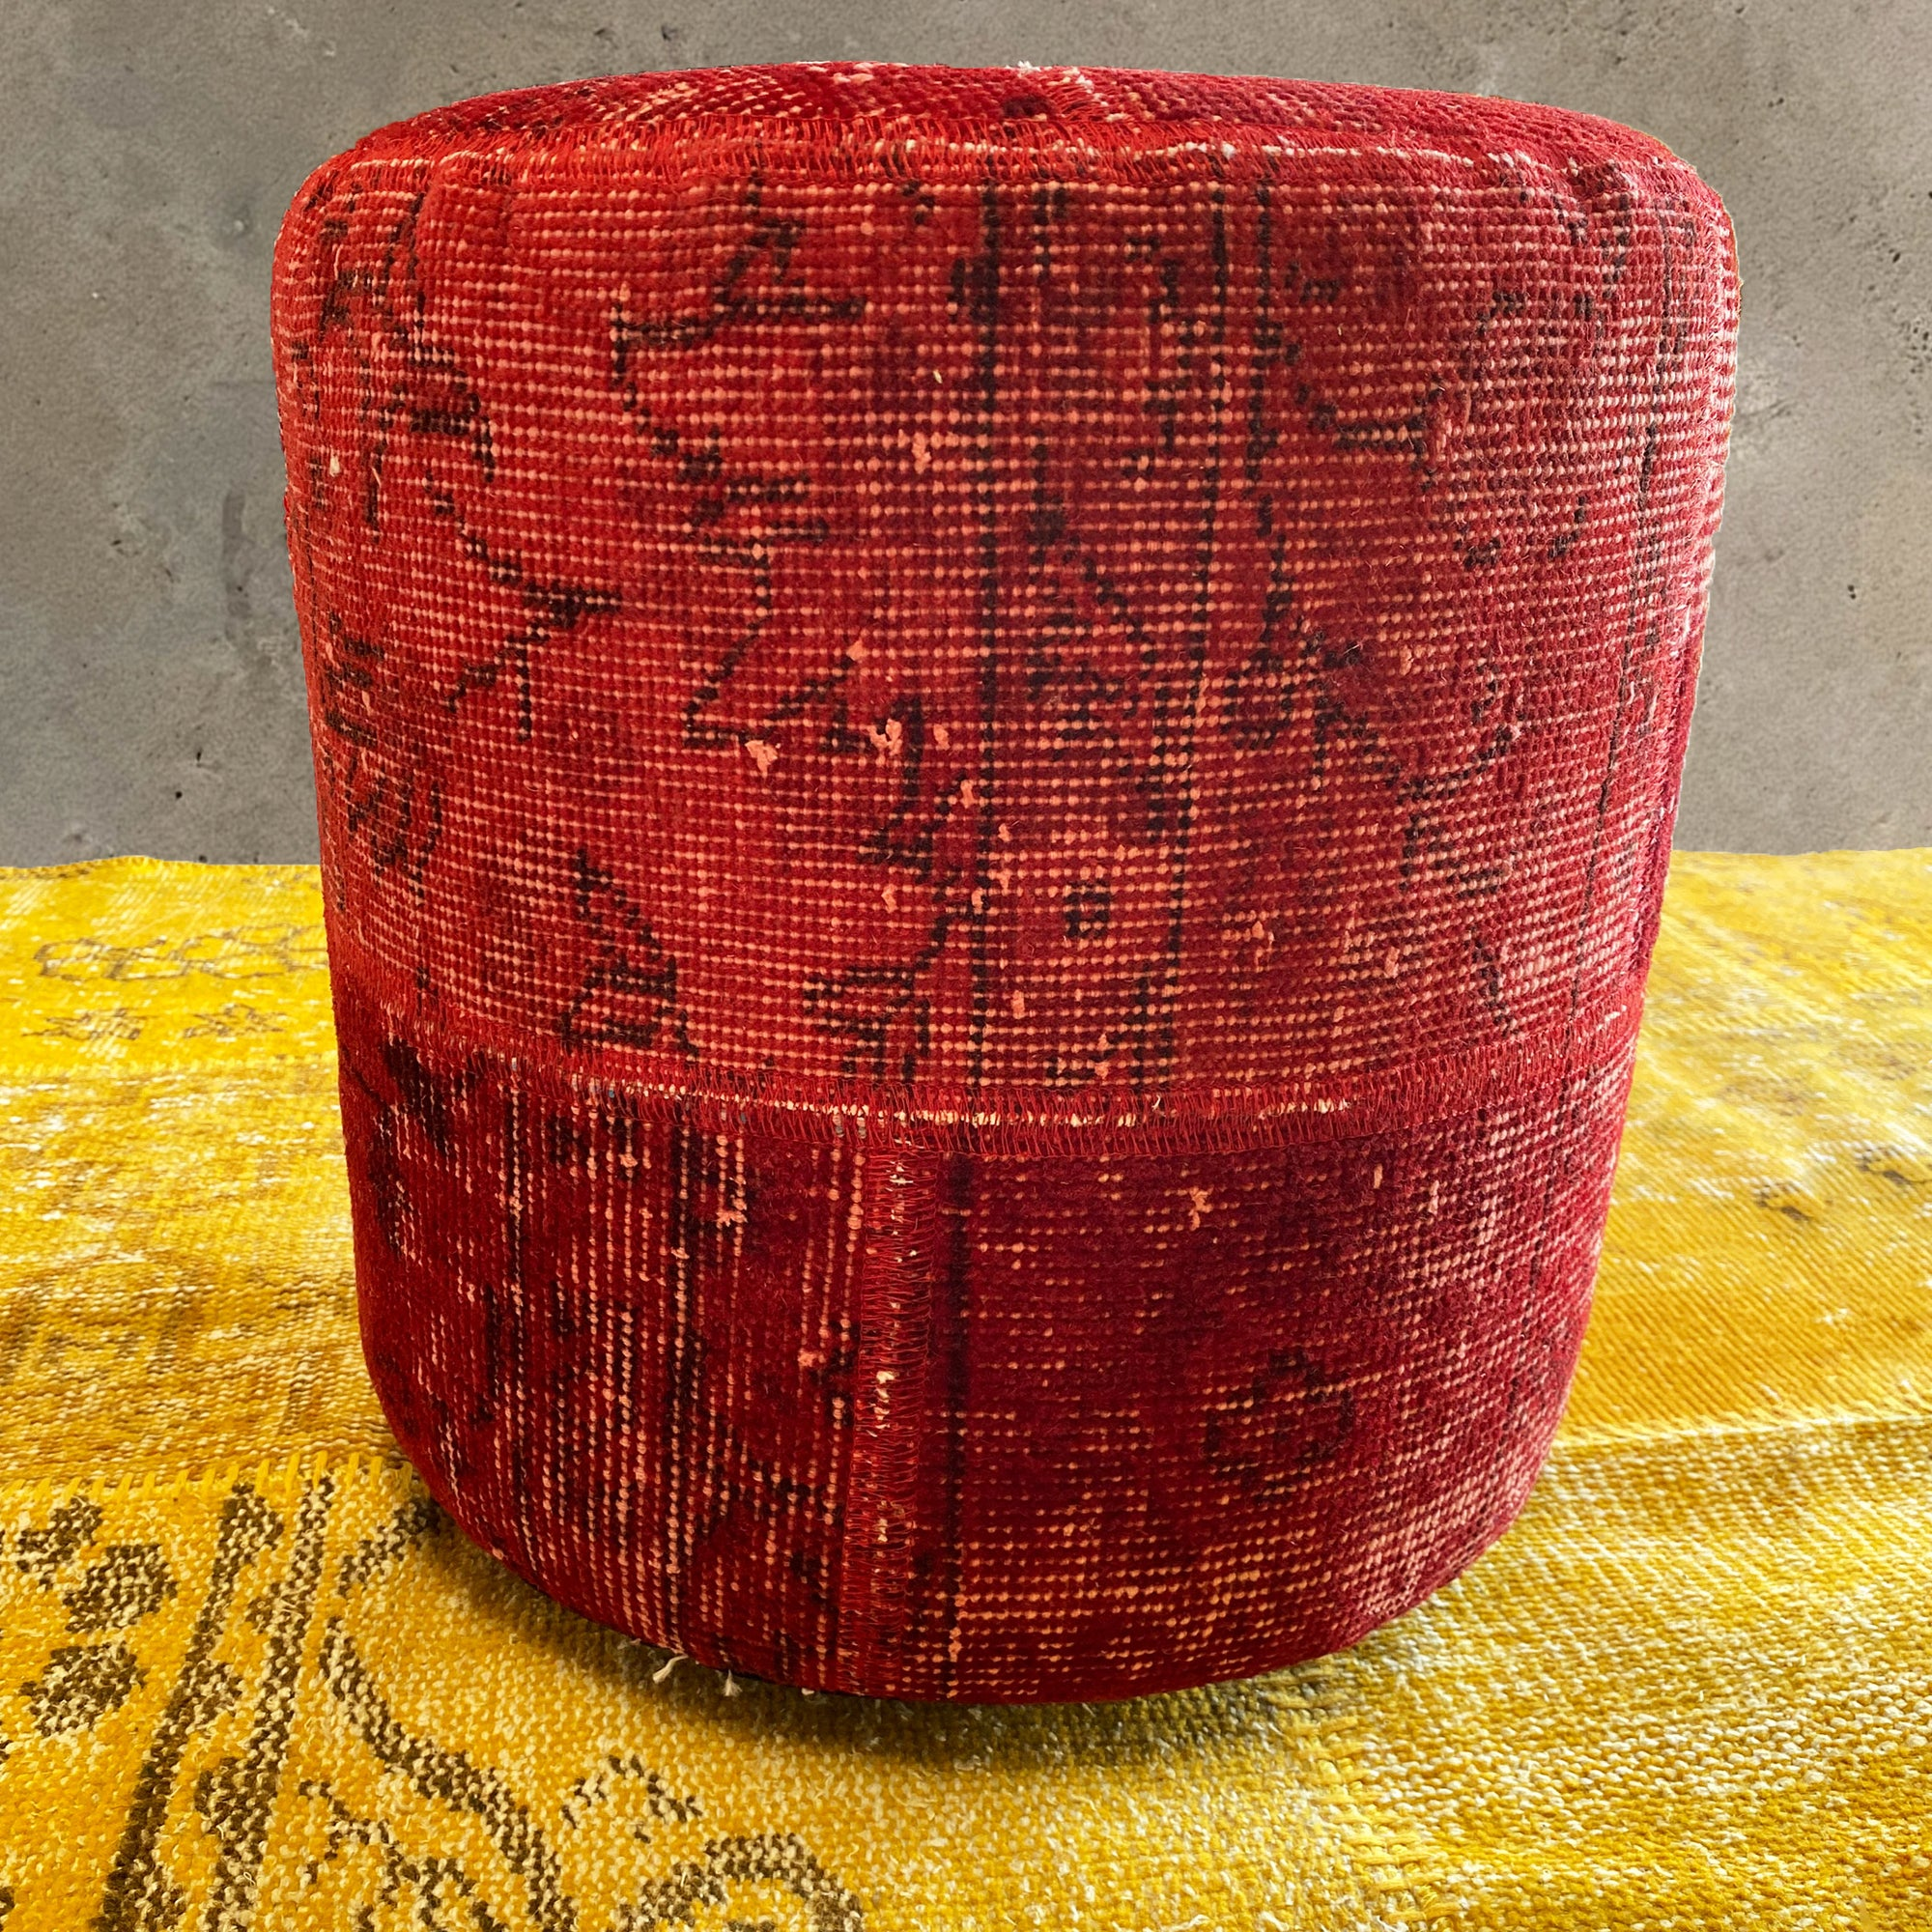 HALI X-Bursa Handmade over dyed Pouf RED001